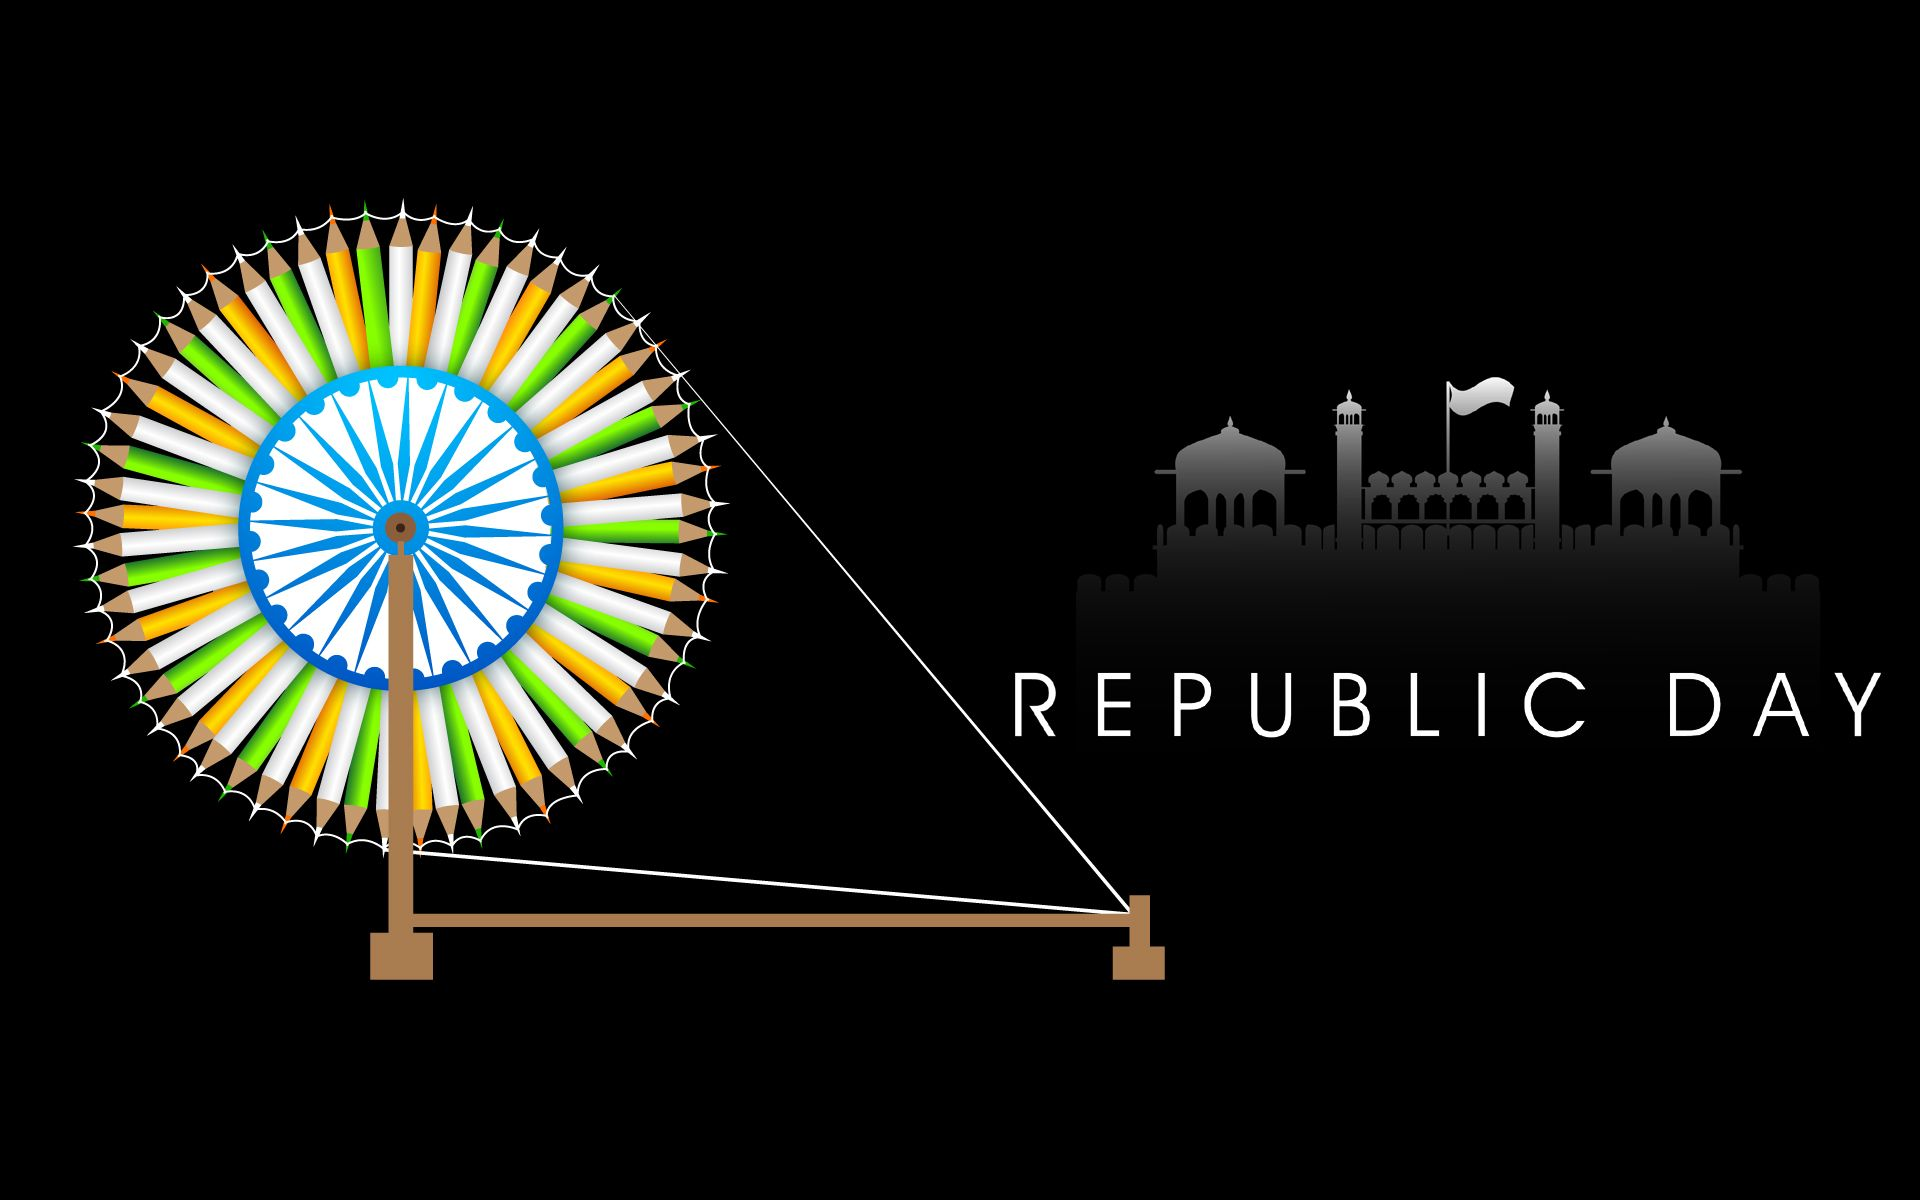 Pin On 26 January Republic Day 26 january 2021 image gif download